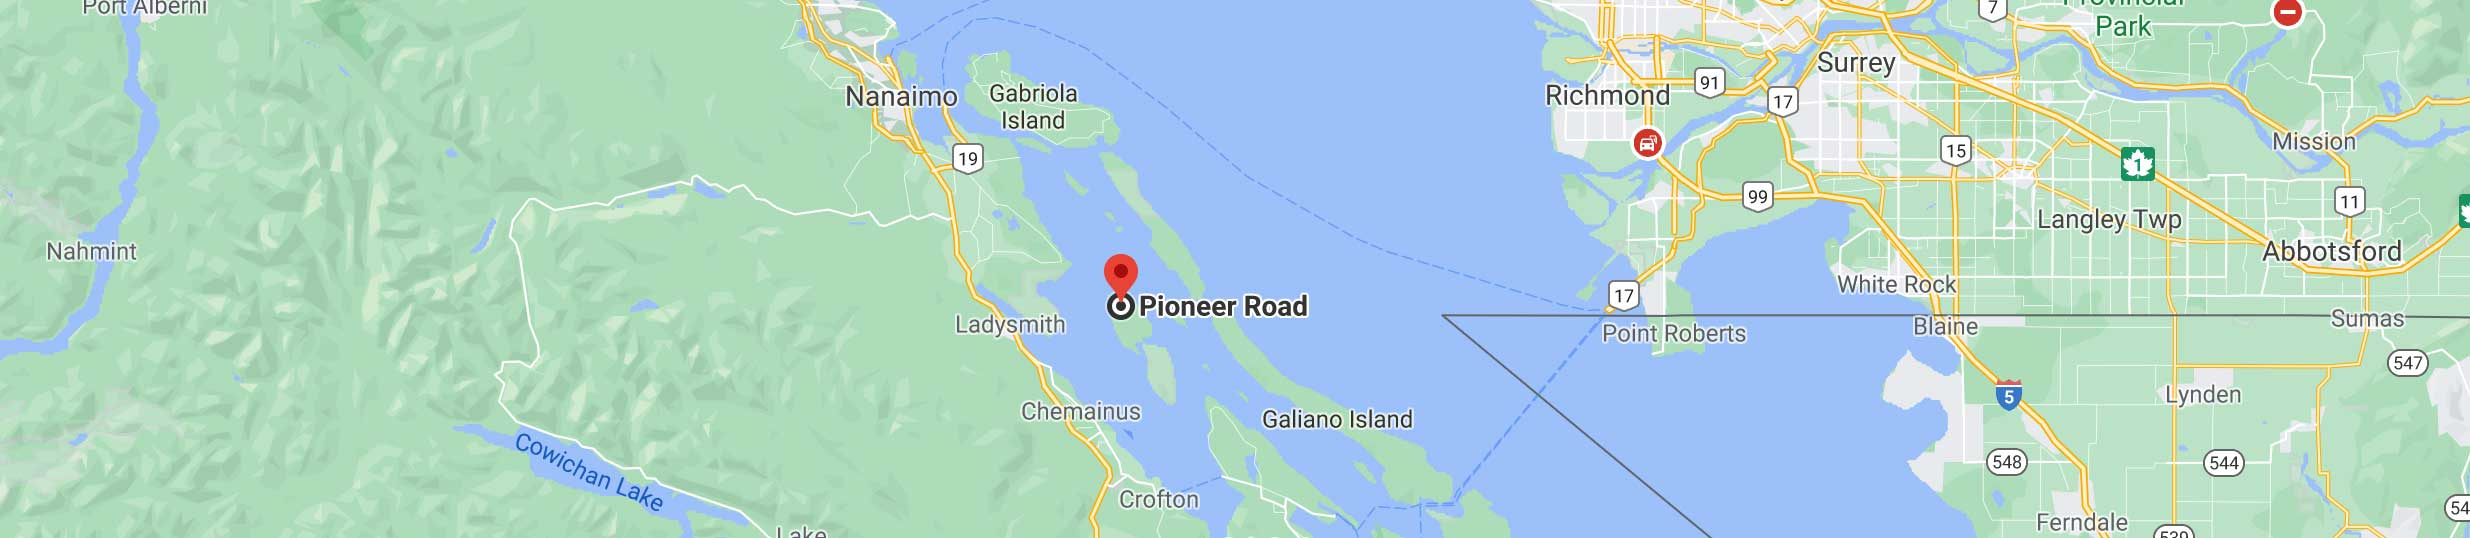 Pioneer Pacific's location indicated on a map. Links to Google maps directions.